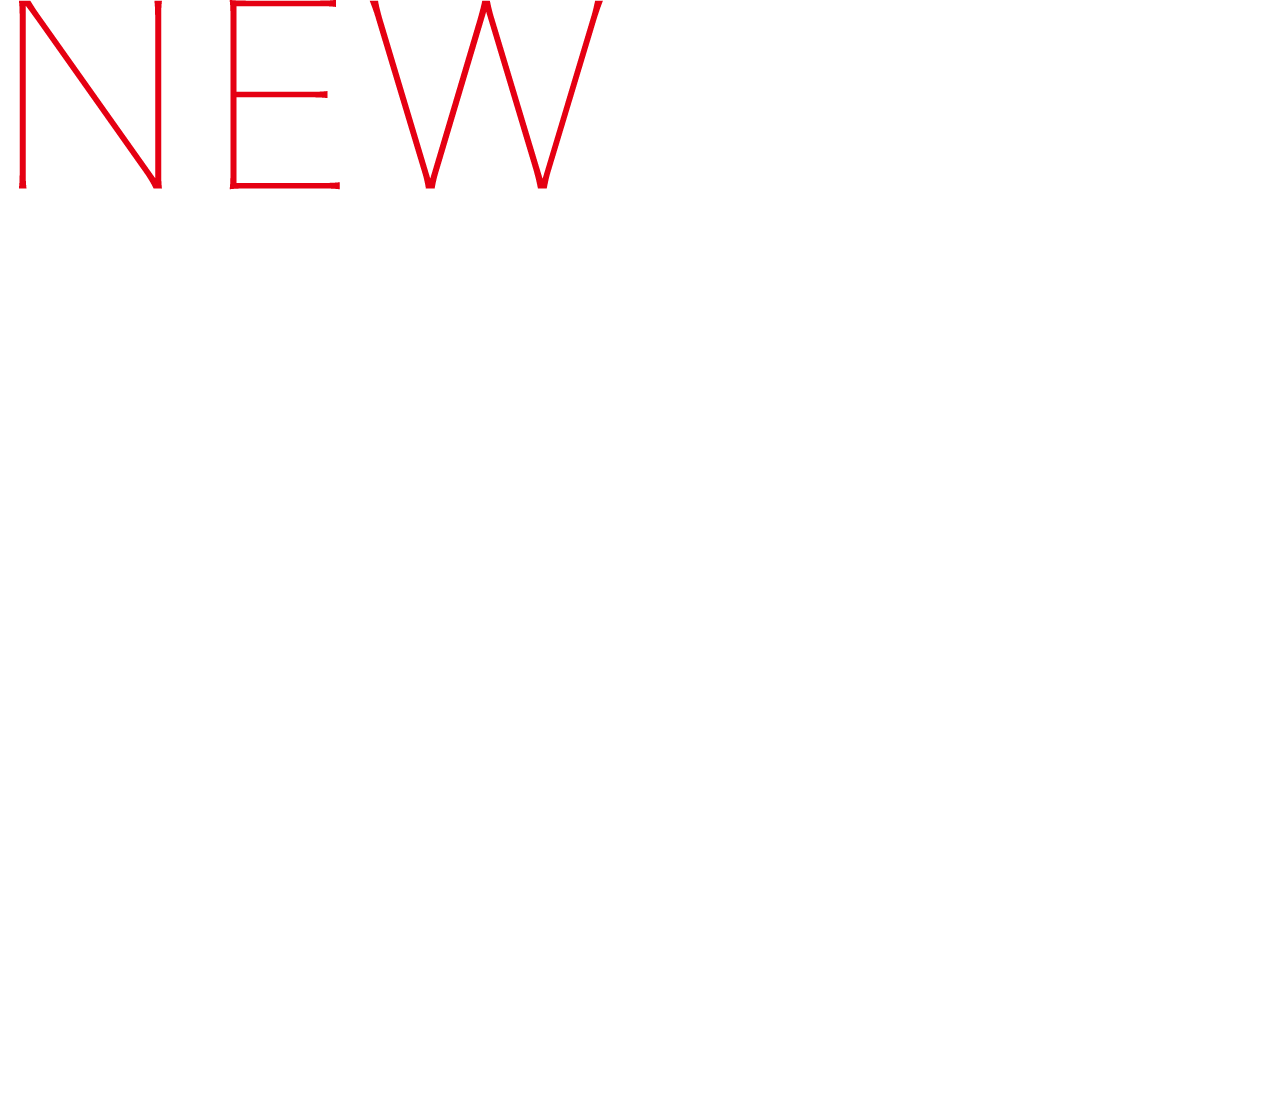 NEW MANSION PROJECT START!